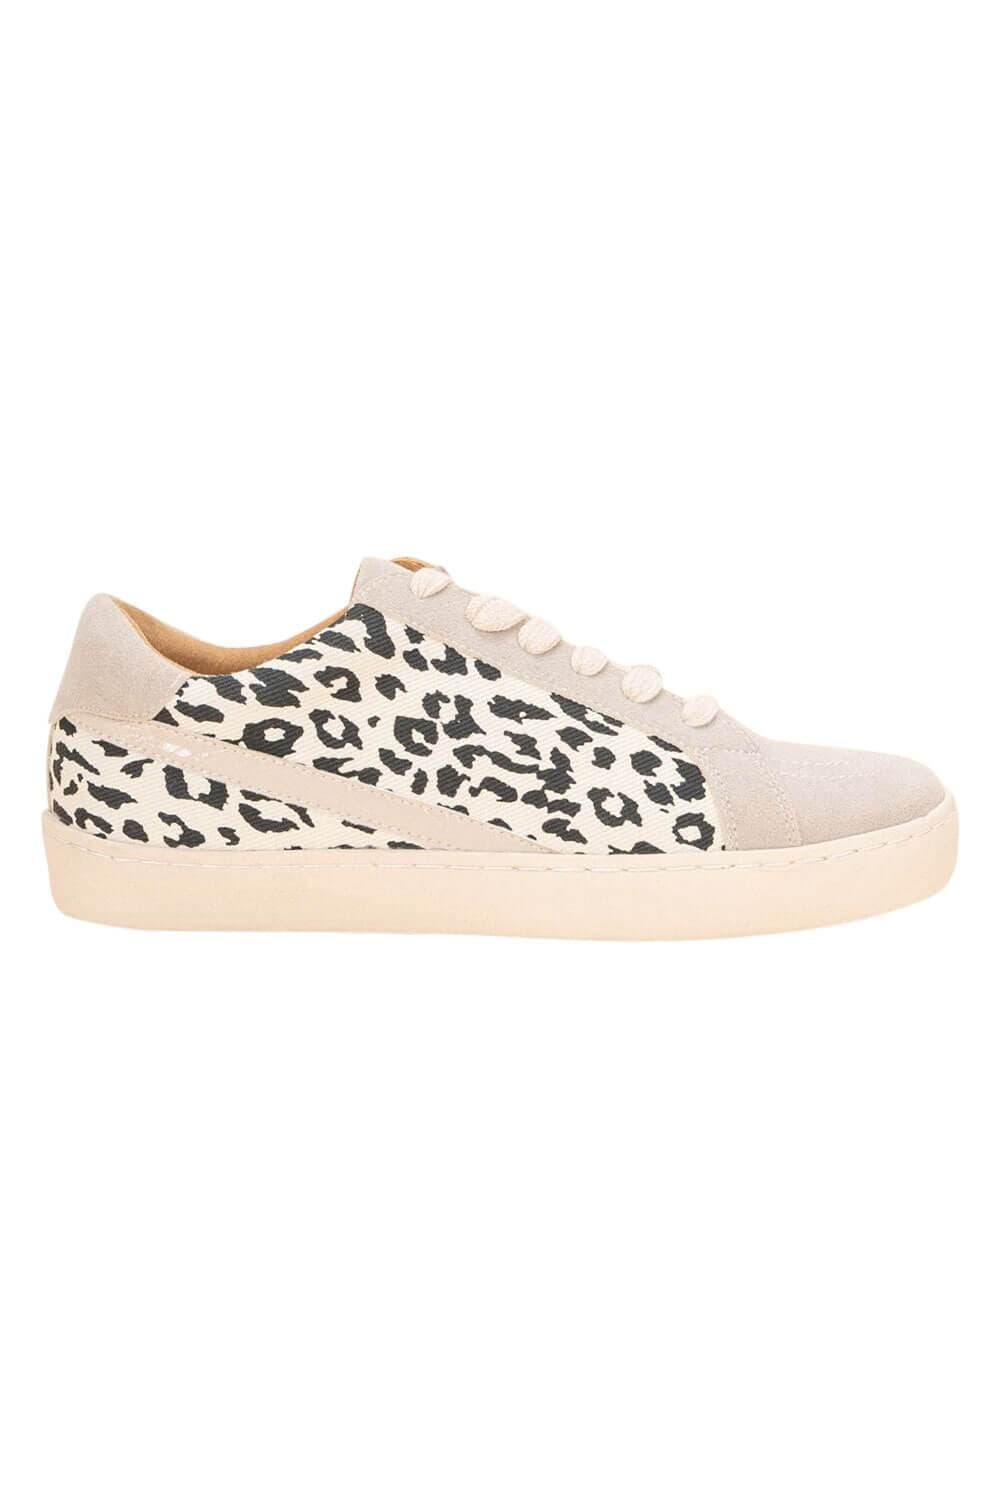 Jordan Leopard Low Top Sneaker beige side MILK MONEY